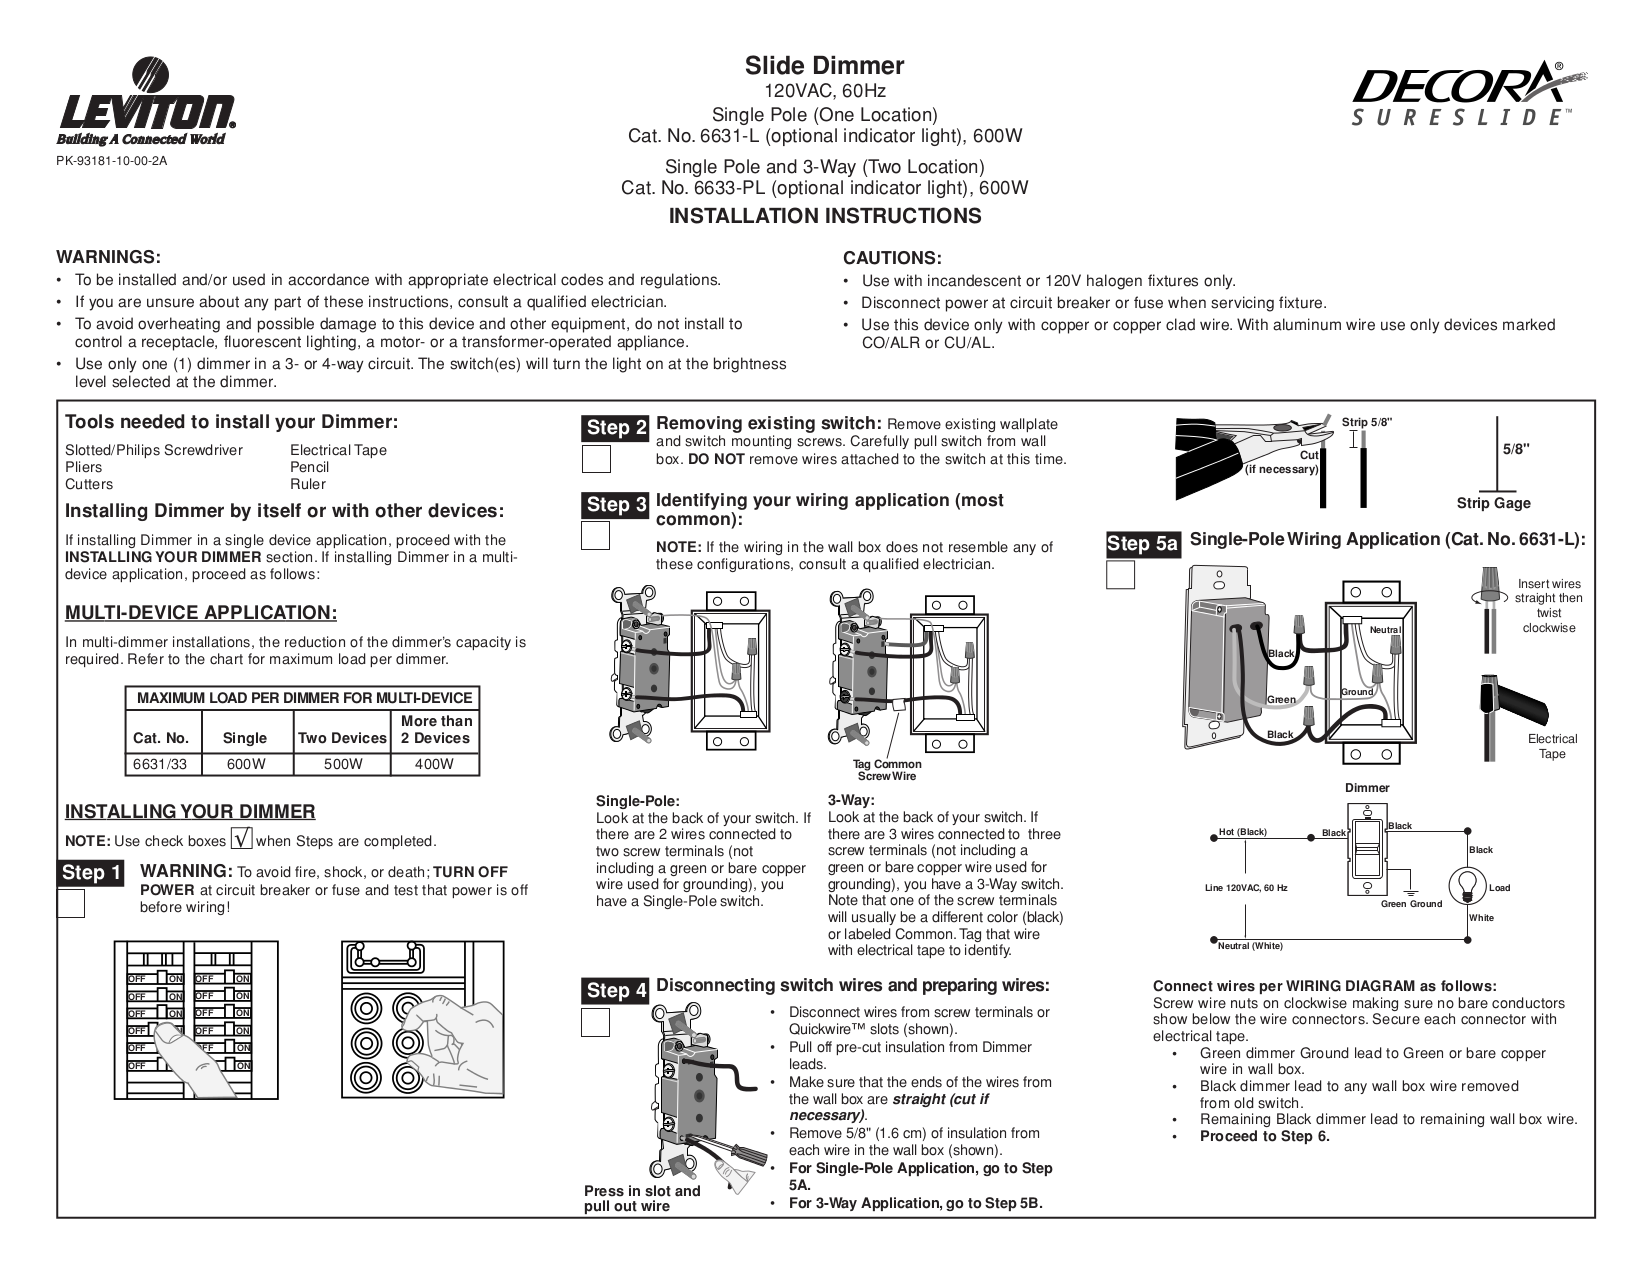 Leviton Incandescent Dimmer Wiring Diagram 42 One Light Get Free Image About Pdf 0 Download For Sureslide 6631 L Dimmers Other Manual Switch